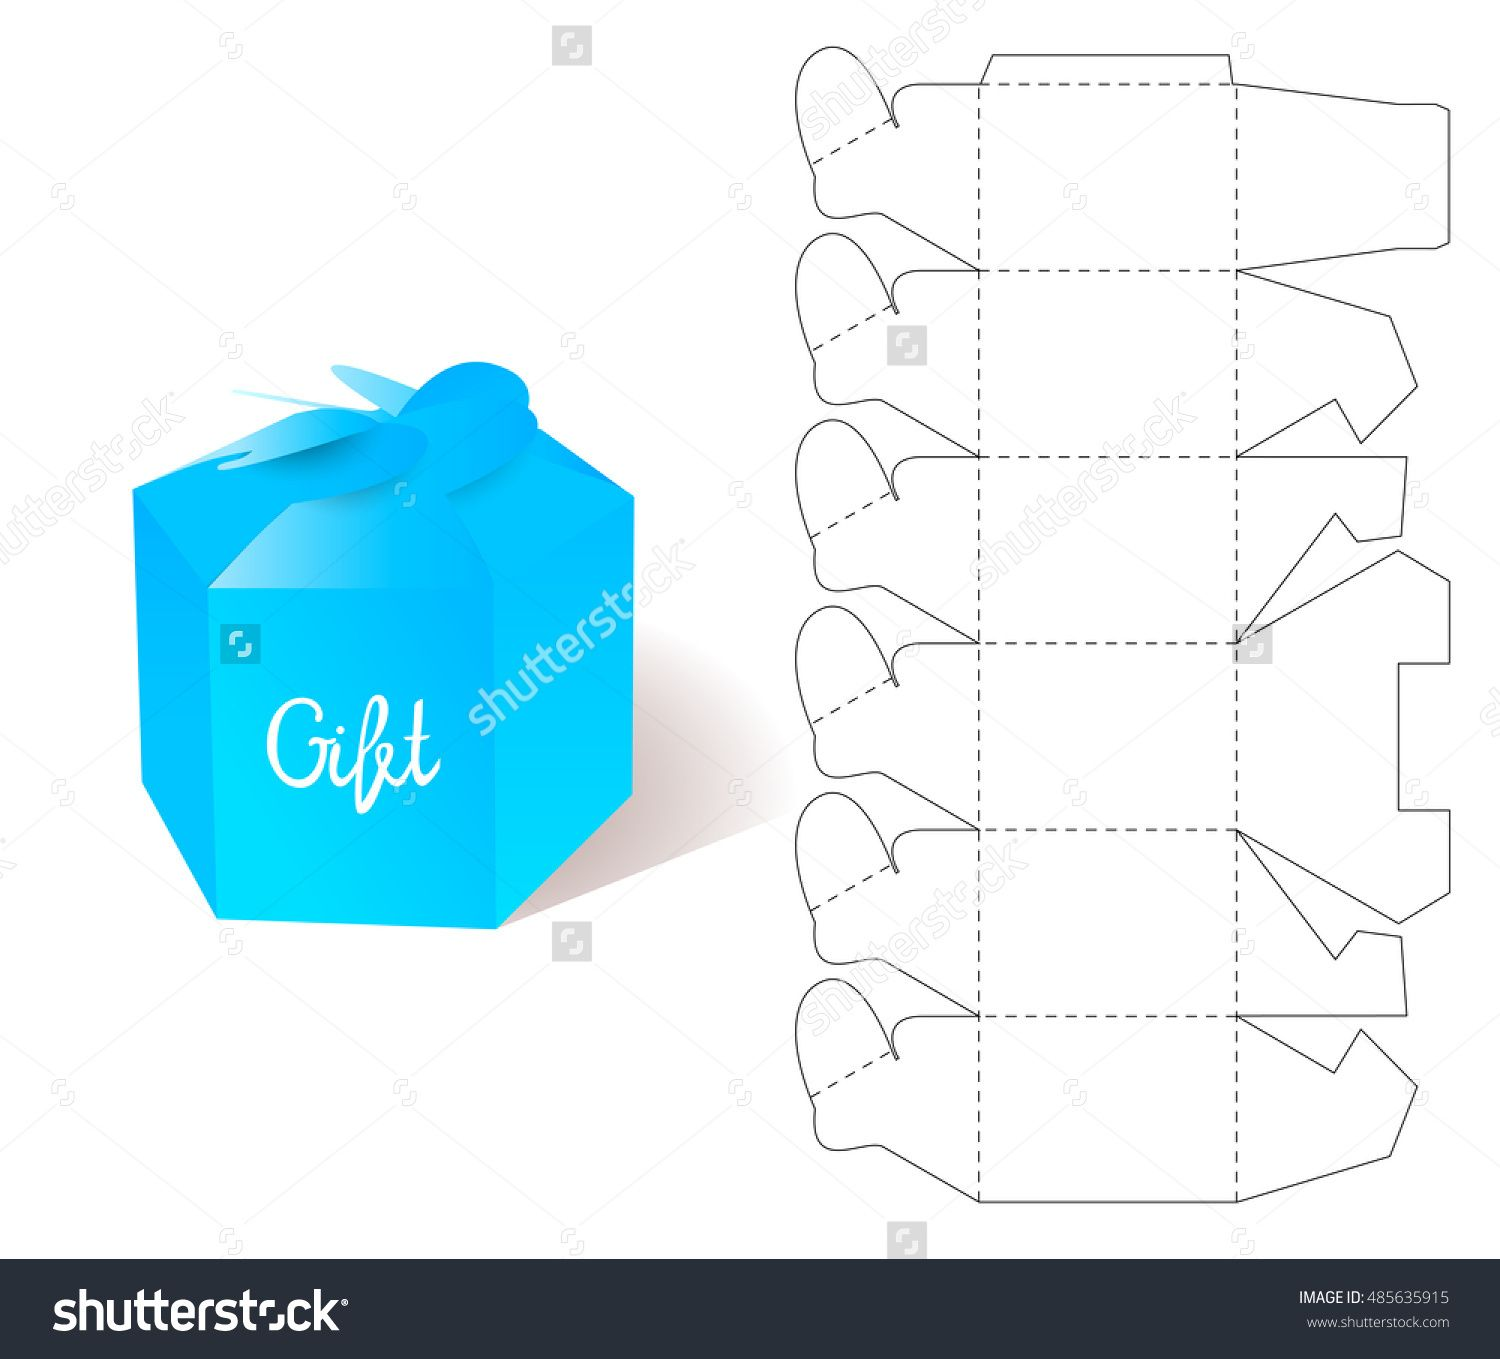 Box paper blueprint gift box craft mockup template retail paper blueprint gift box craft mockup template retail cardboard with die malvernweather Choice Image